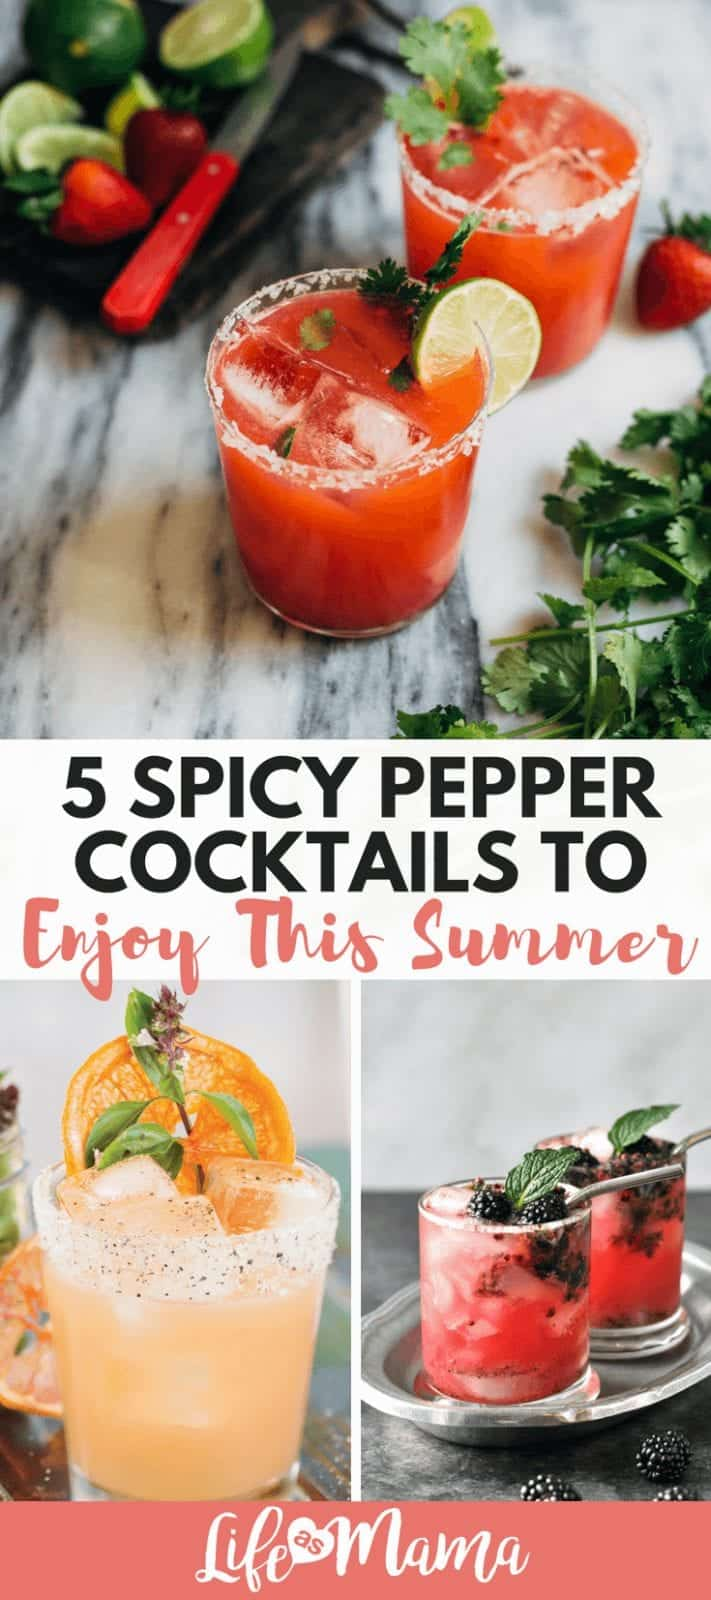 5 Spicy Pepper Cocktails To Enjoy This Summer